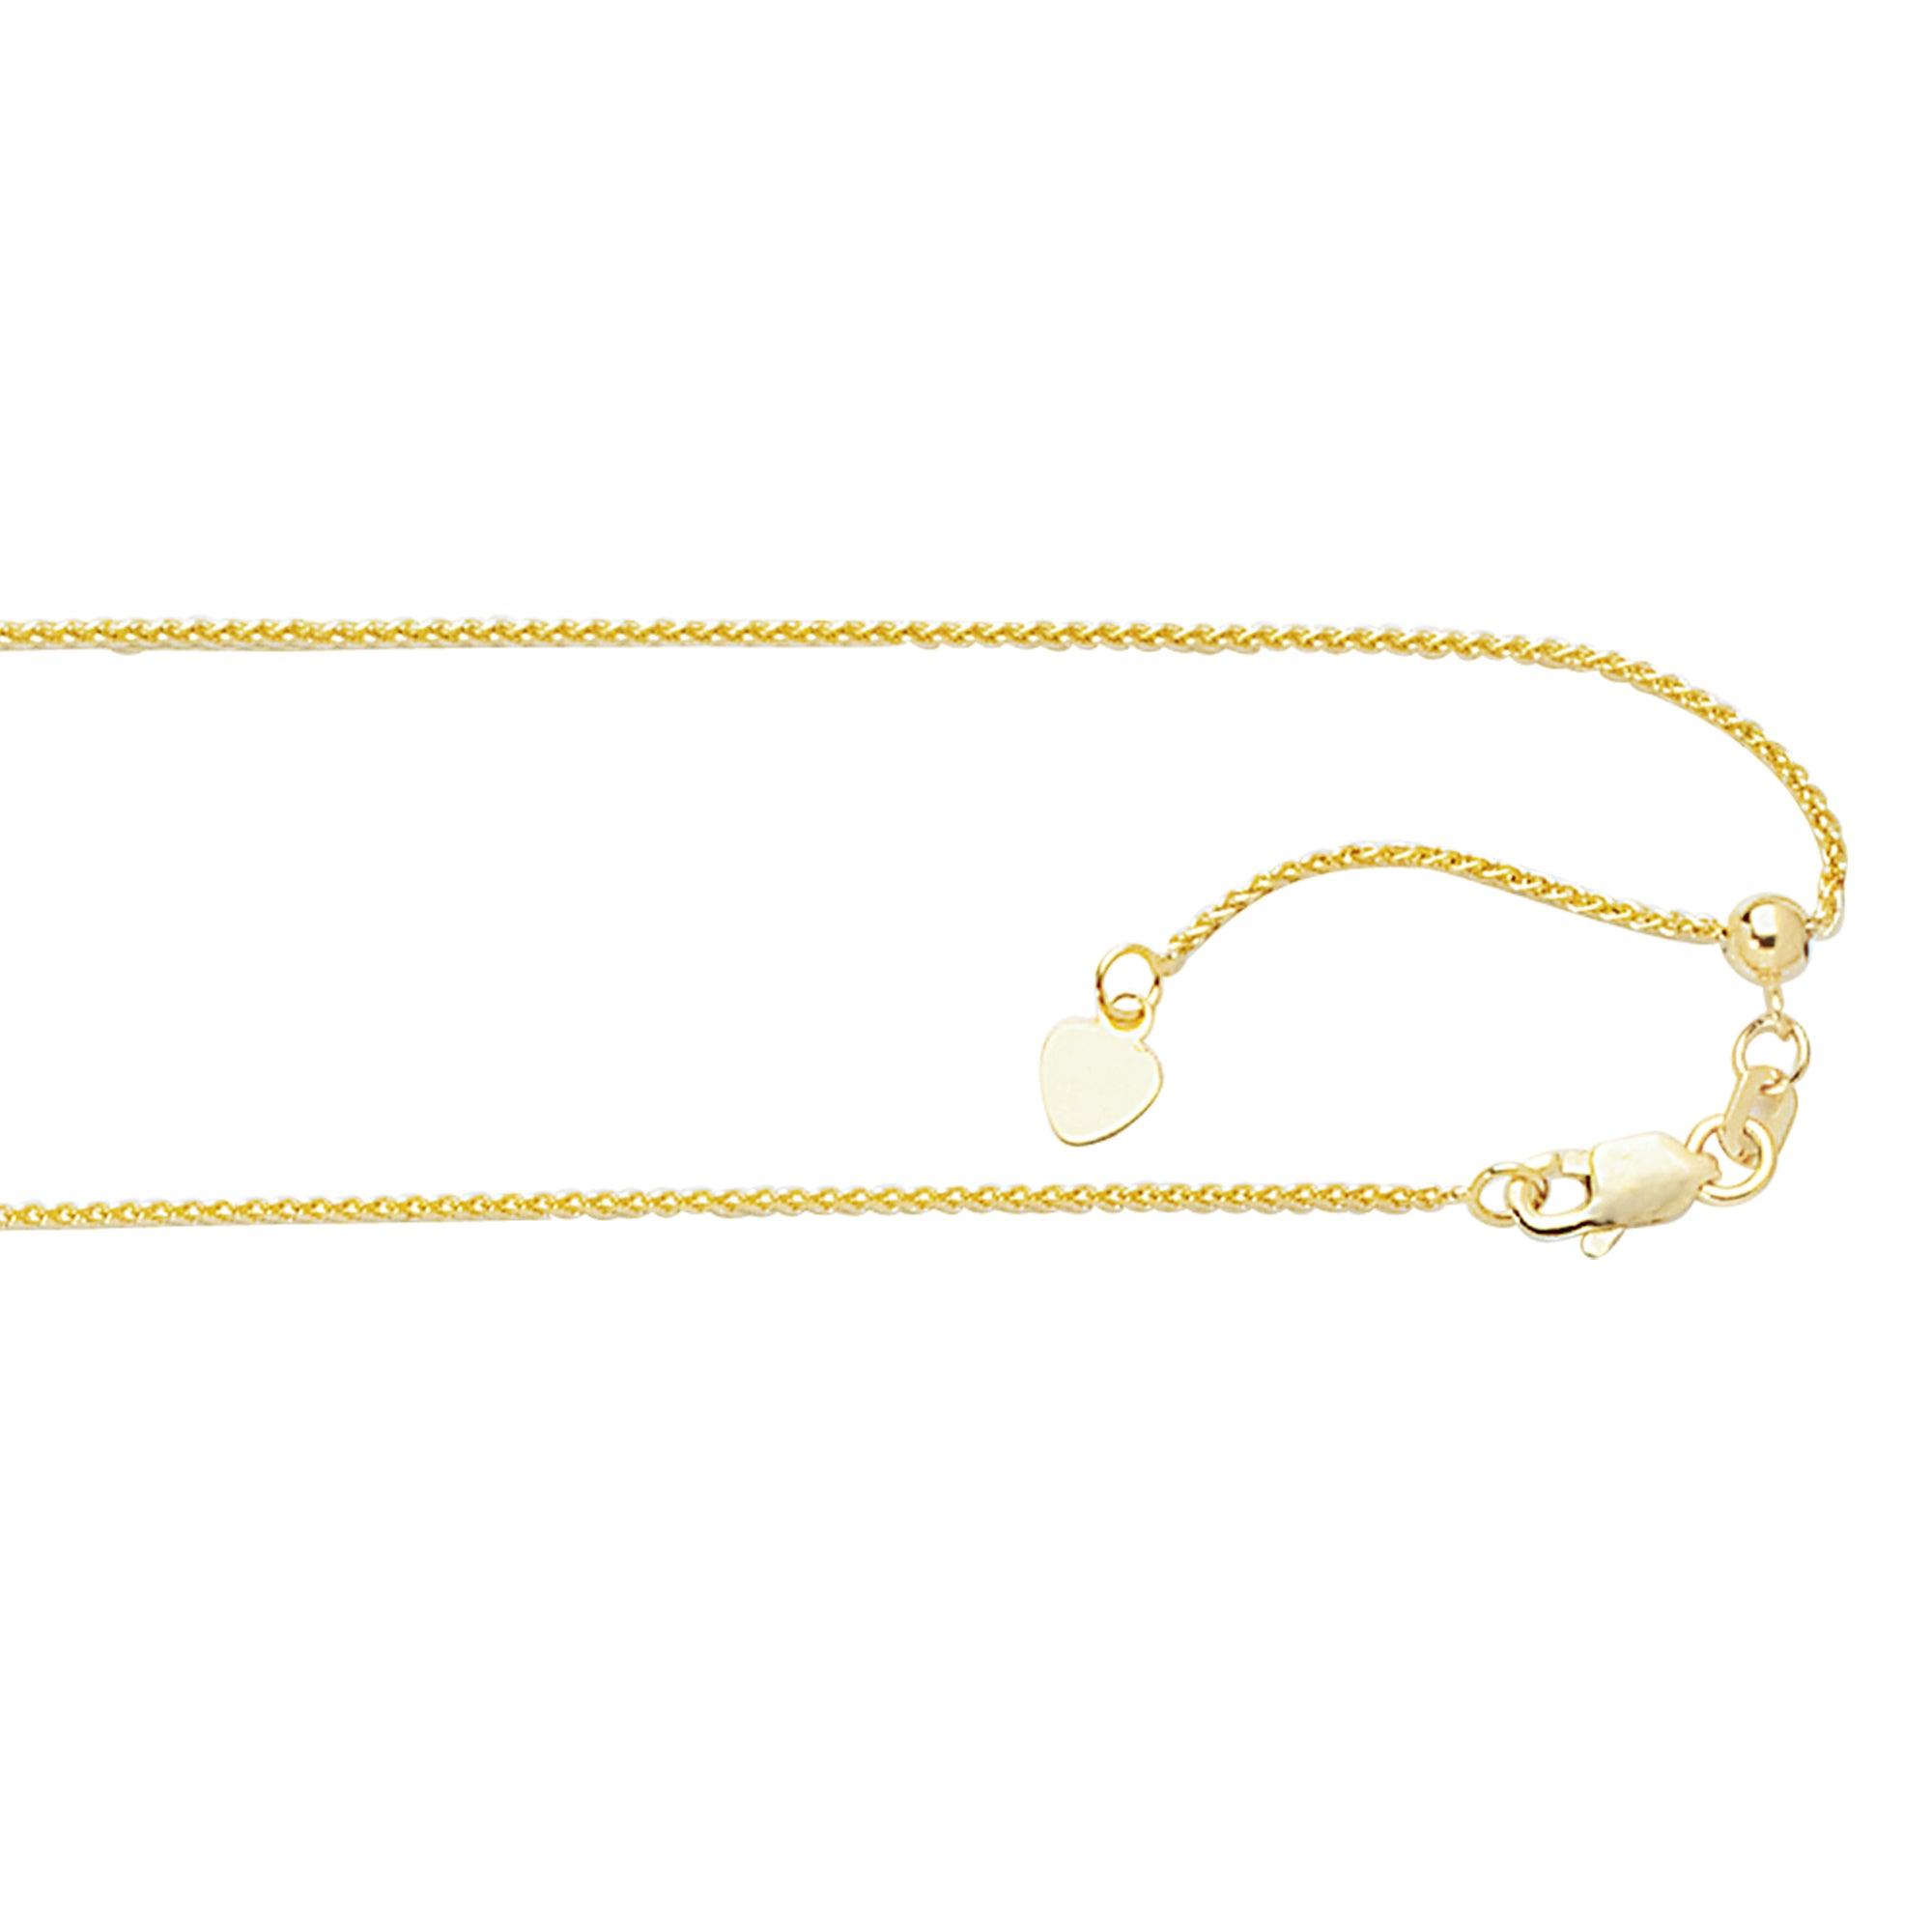 10K Gold 1.0mm Adjustable Wheat Chain